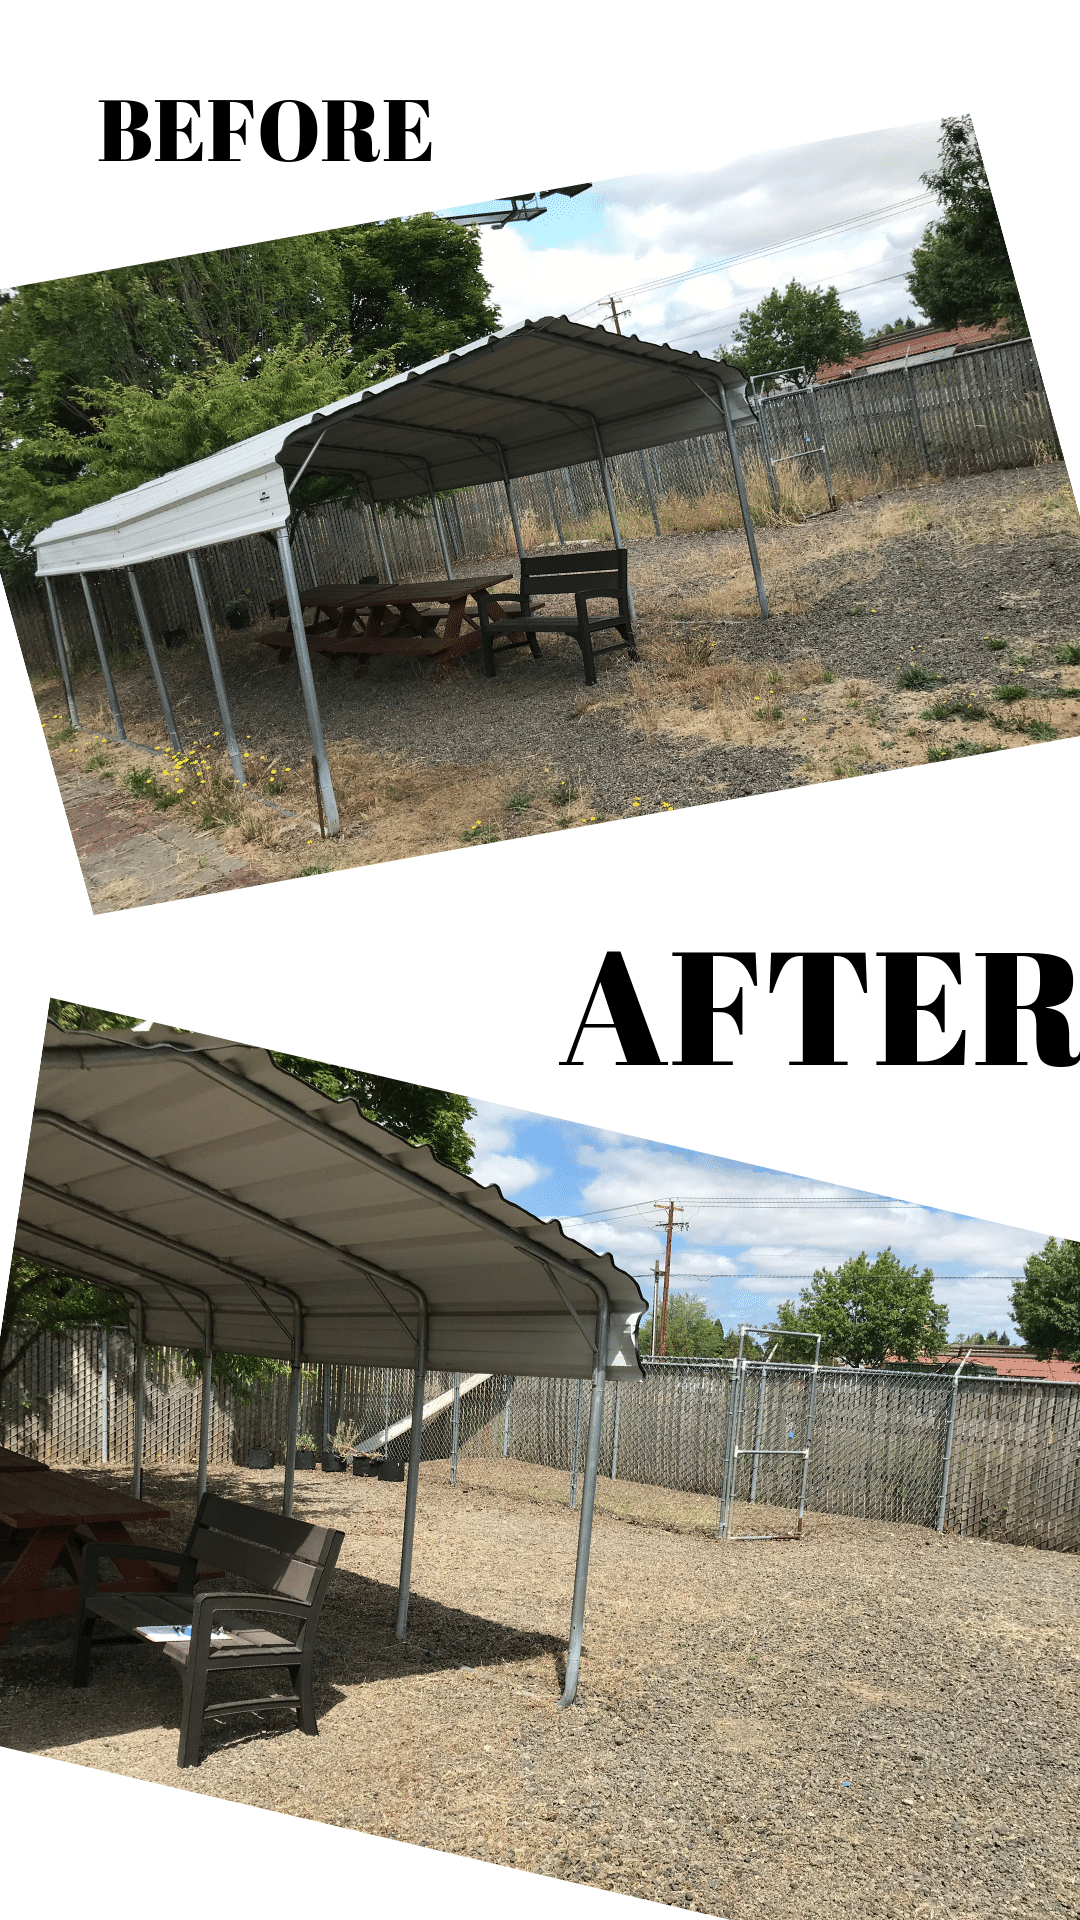 Two images showing the animal shelter backyard before weeds were pulled and after